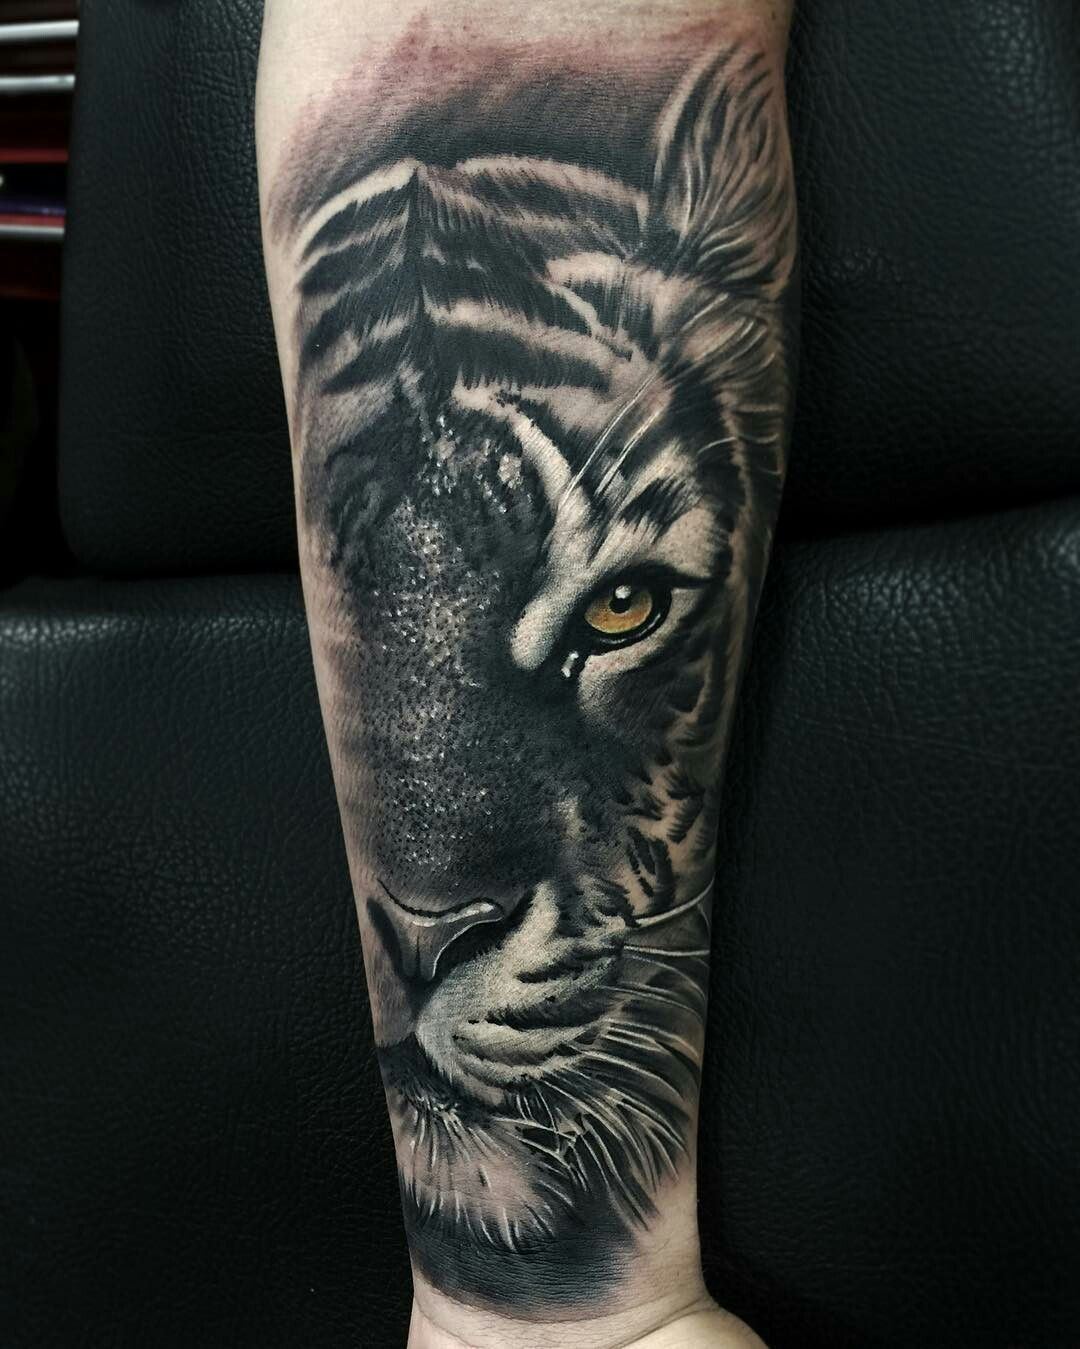 Tattoo Done By Oscartattoo Tigre Tigertattoo Tiger Tattoos Tiger Tattoo Animal Tattoo